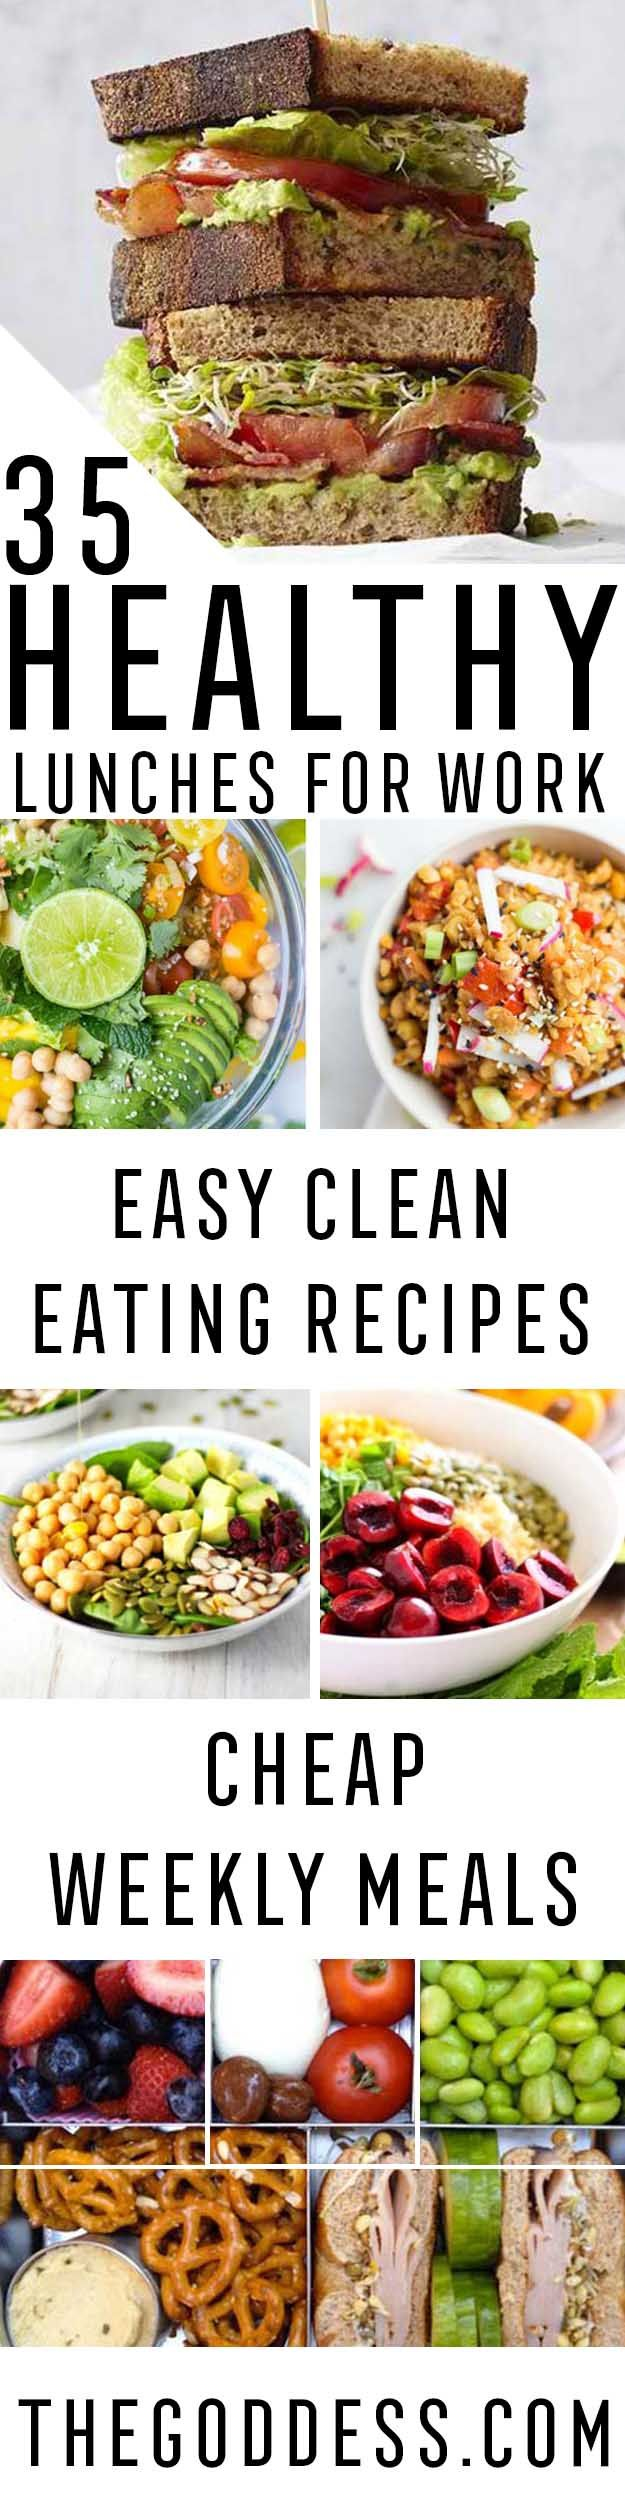 Healthy Lunches for Work - Easy, Quick and Cheap Clean Eating Recipes That You Can Take To Work - Weekly Meals That Are Great for Health Fitness and Weightloss - Low Fat Recipe Ideas and Simple Low Ca